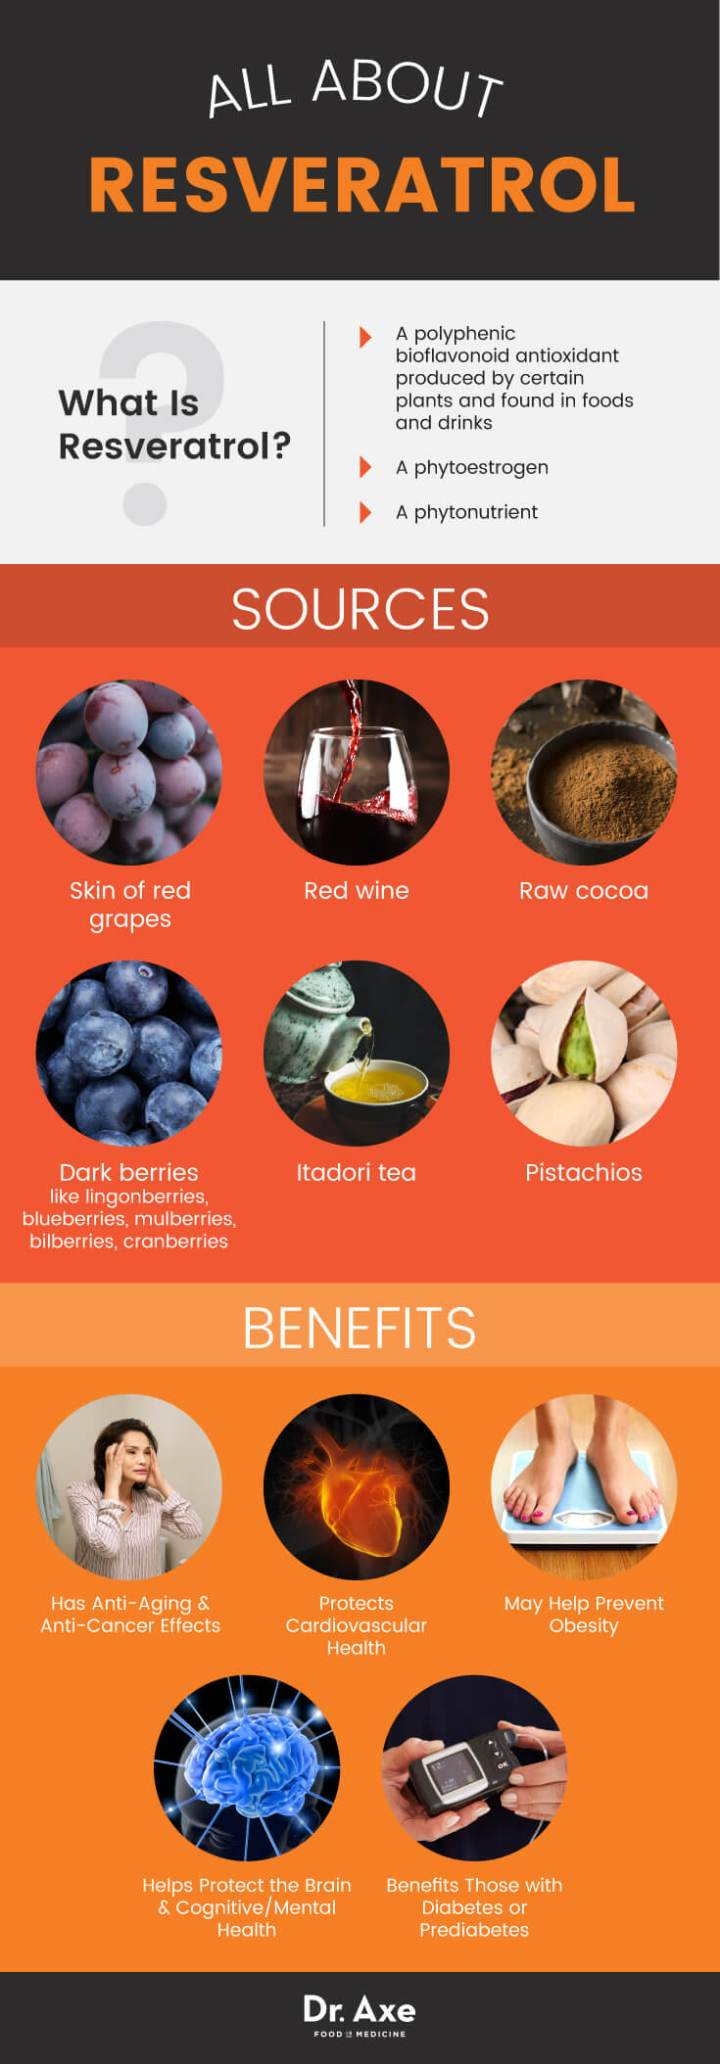 All about resveratrol - Dr. Axe